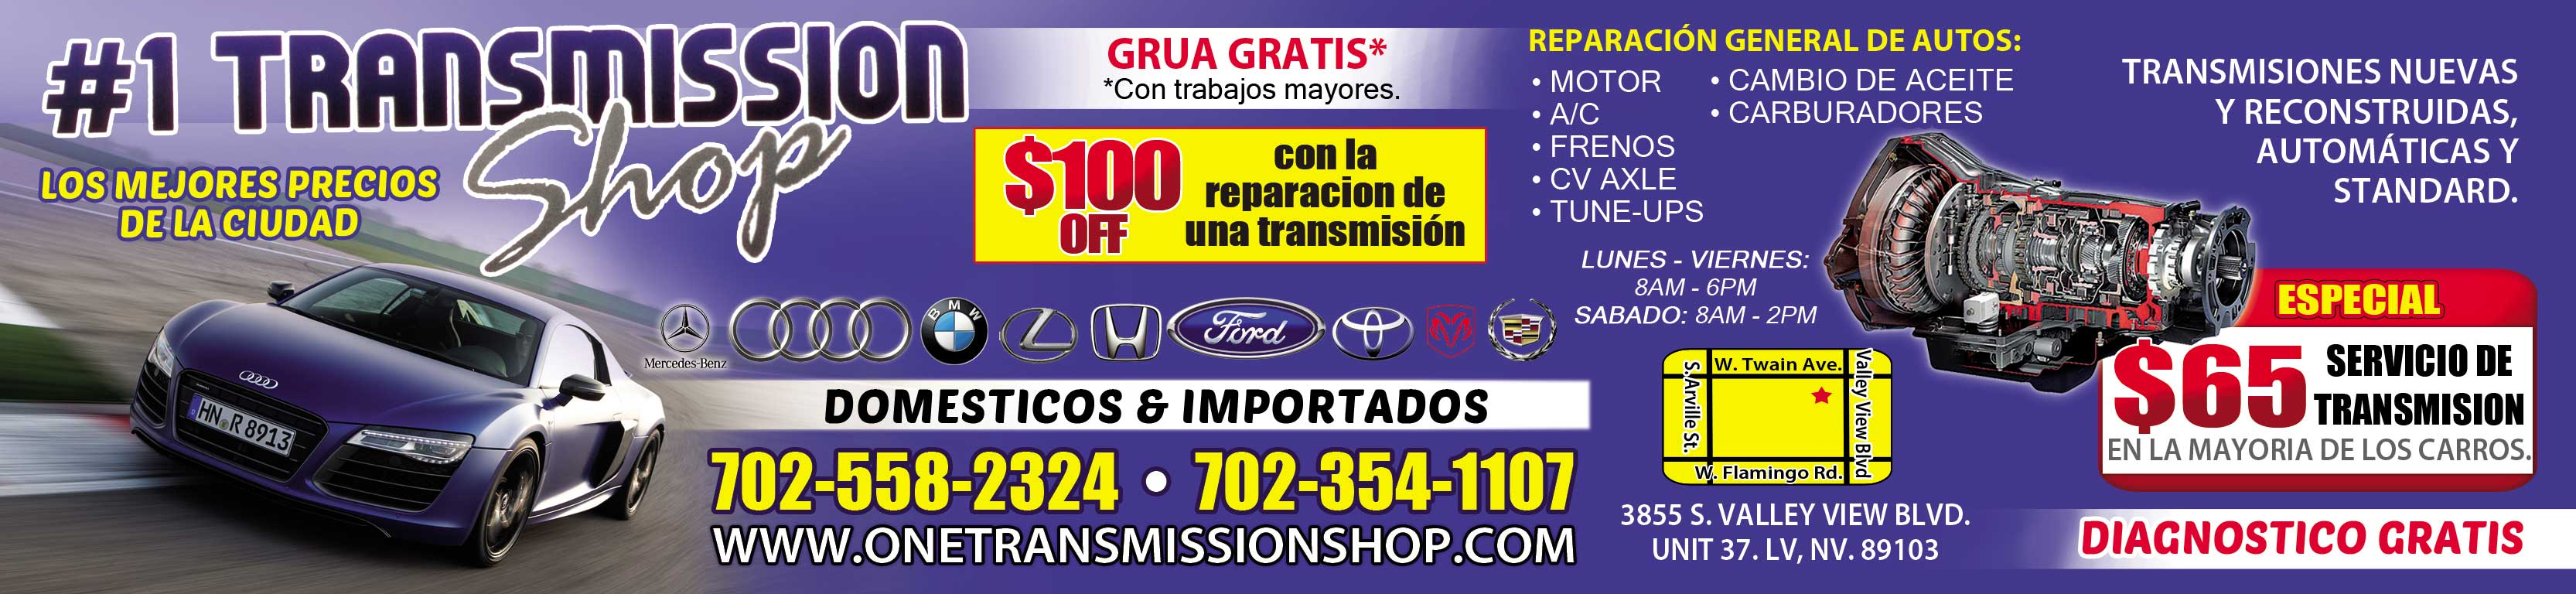 http://www.solo-ofertas-usa.com/wp-content/uploads/2012/02/3-one-transmission.jpg